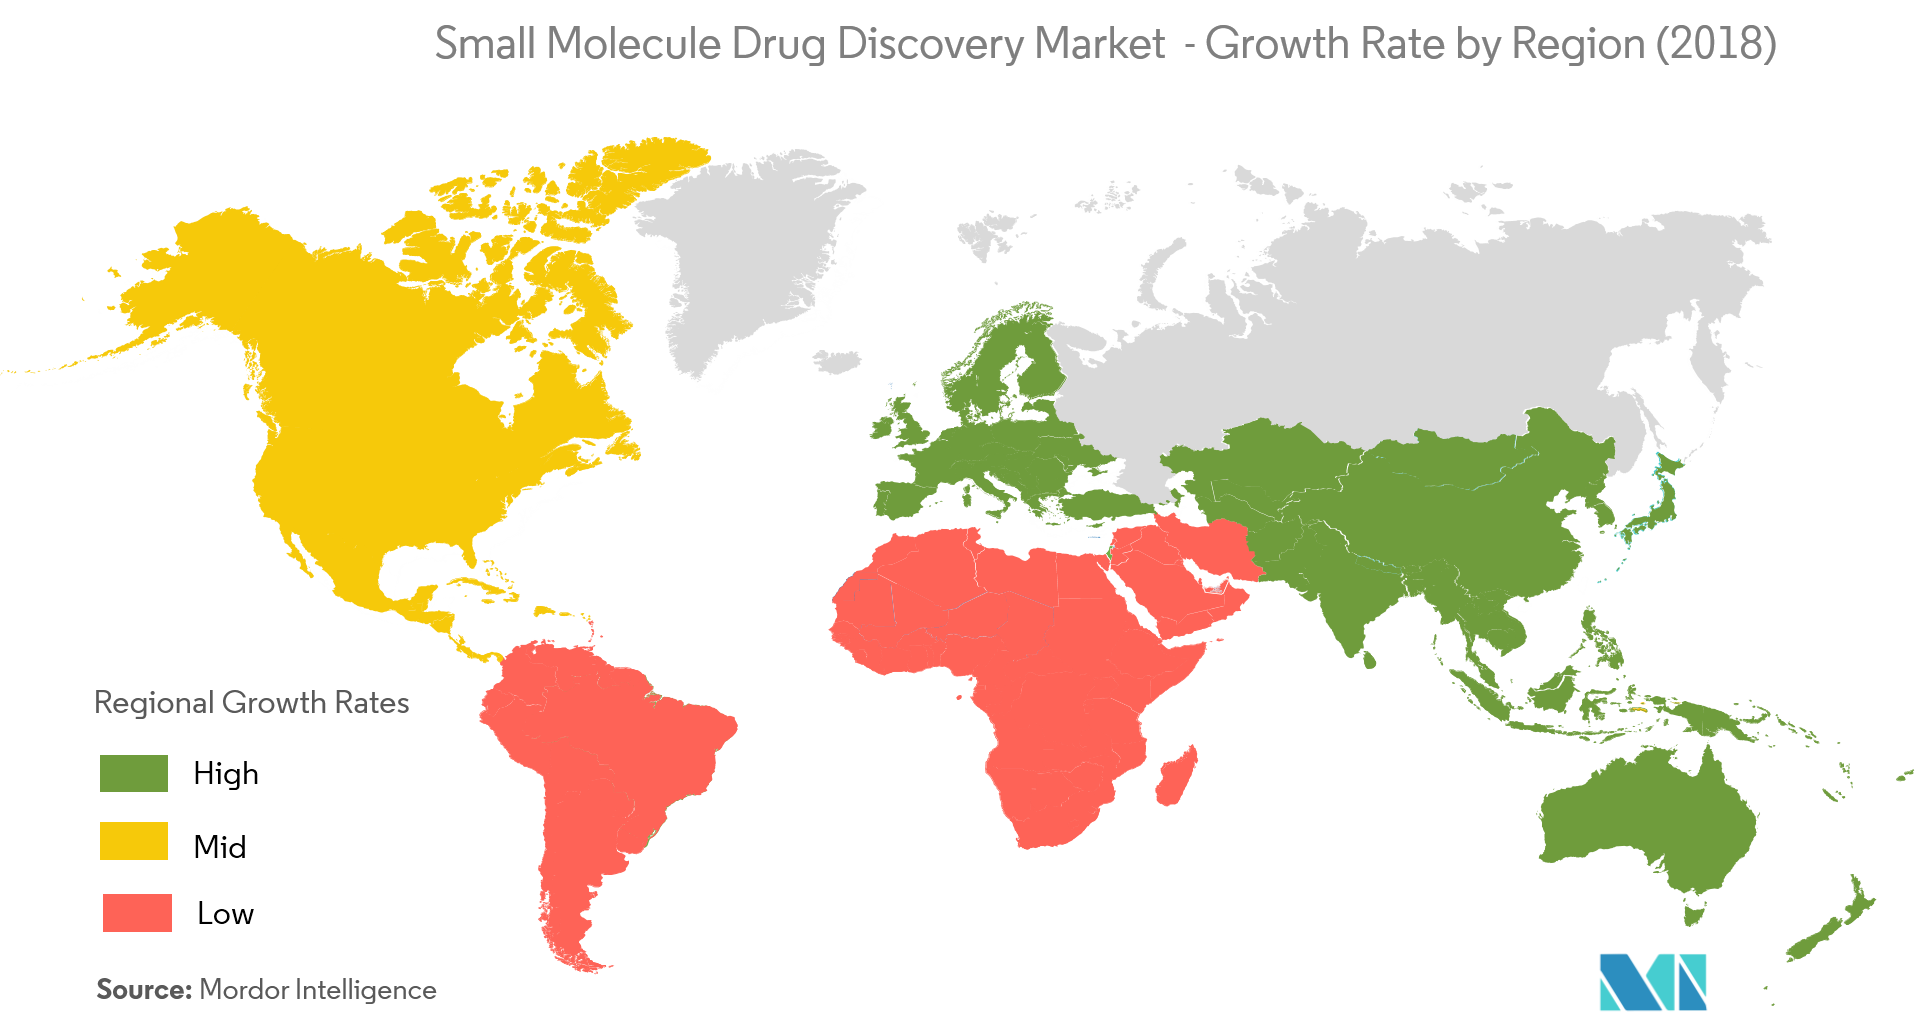 small molecule drug discovery market